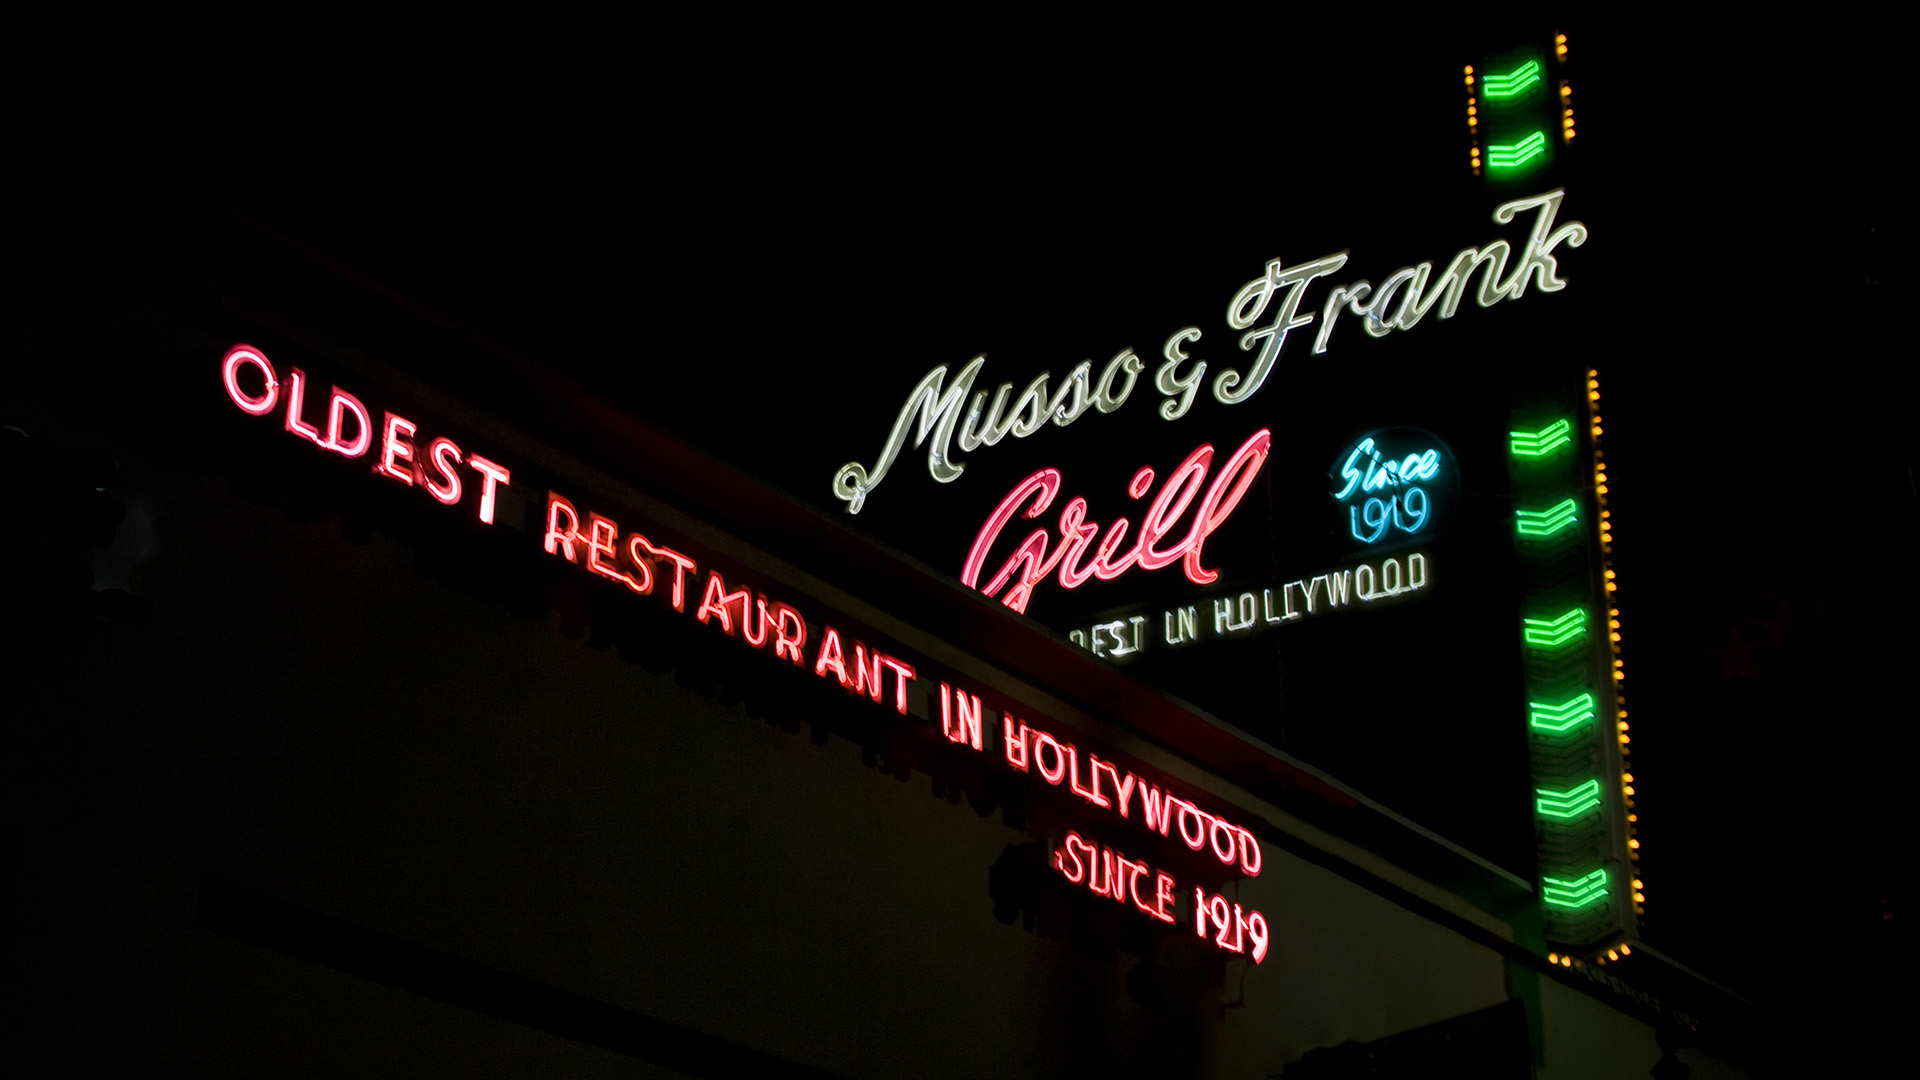 Musso and Frank Grill on Hollywood Blvd.